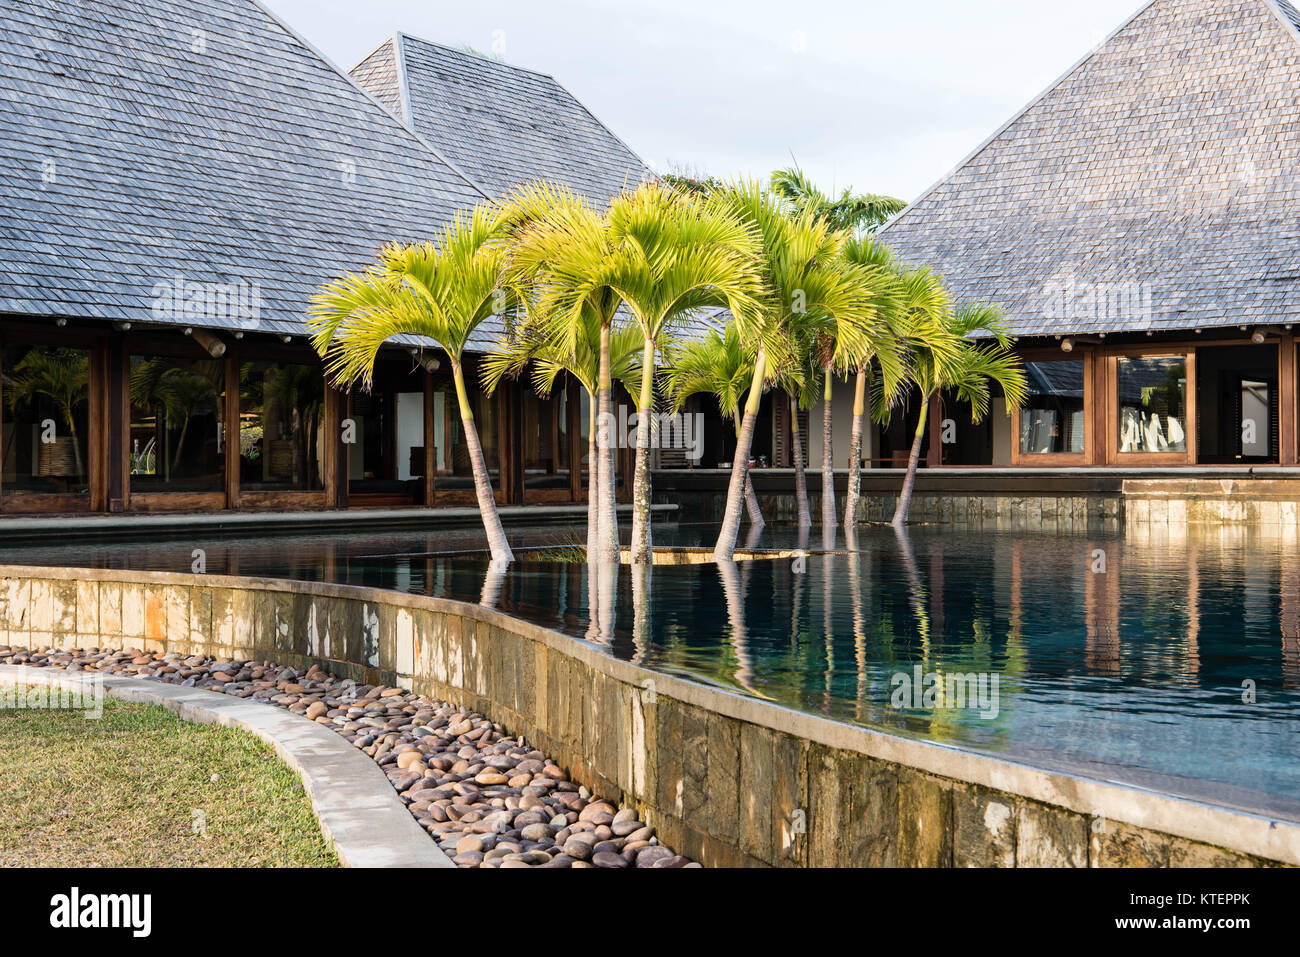 The infinity pool at the Heritage Awali hotel, in the south of Mauritius - Stock Image